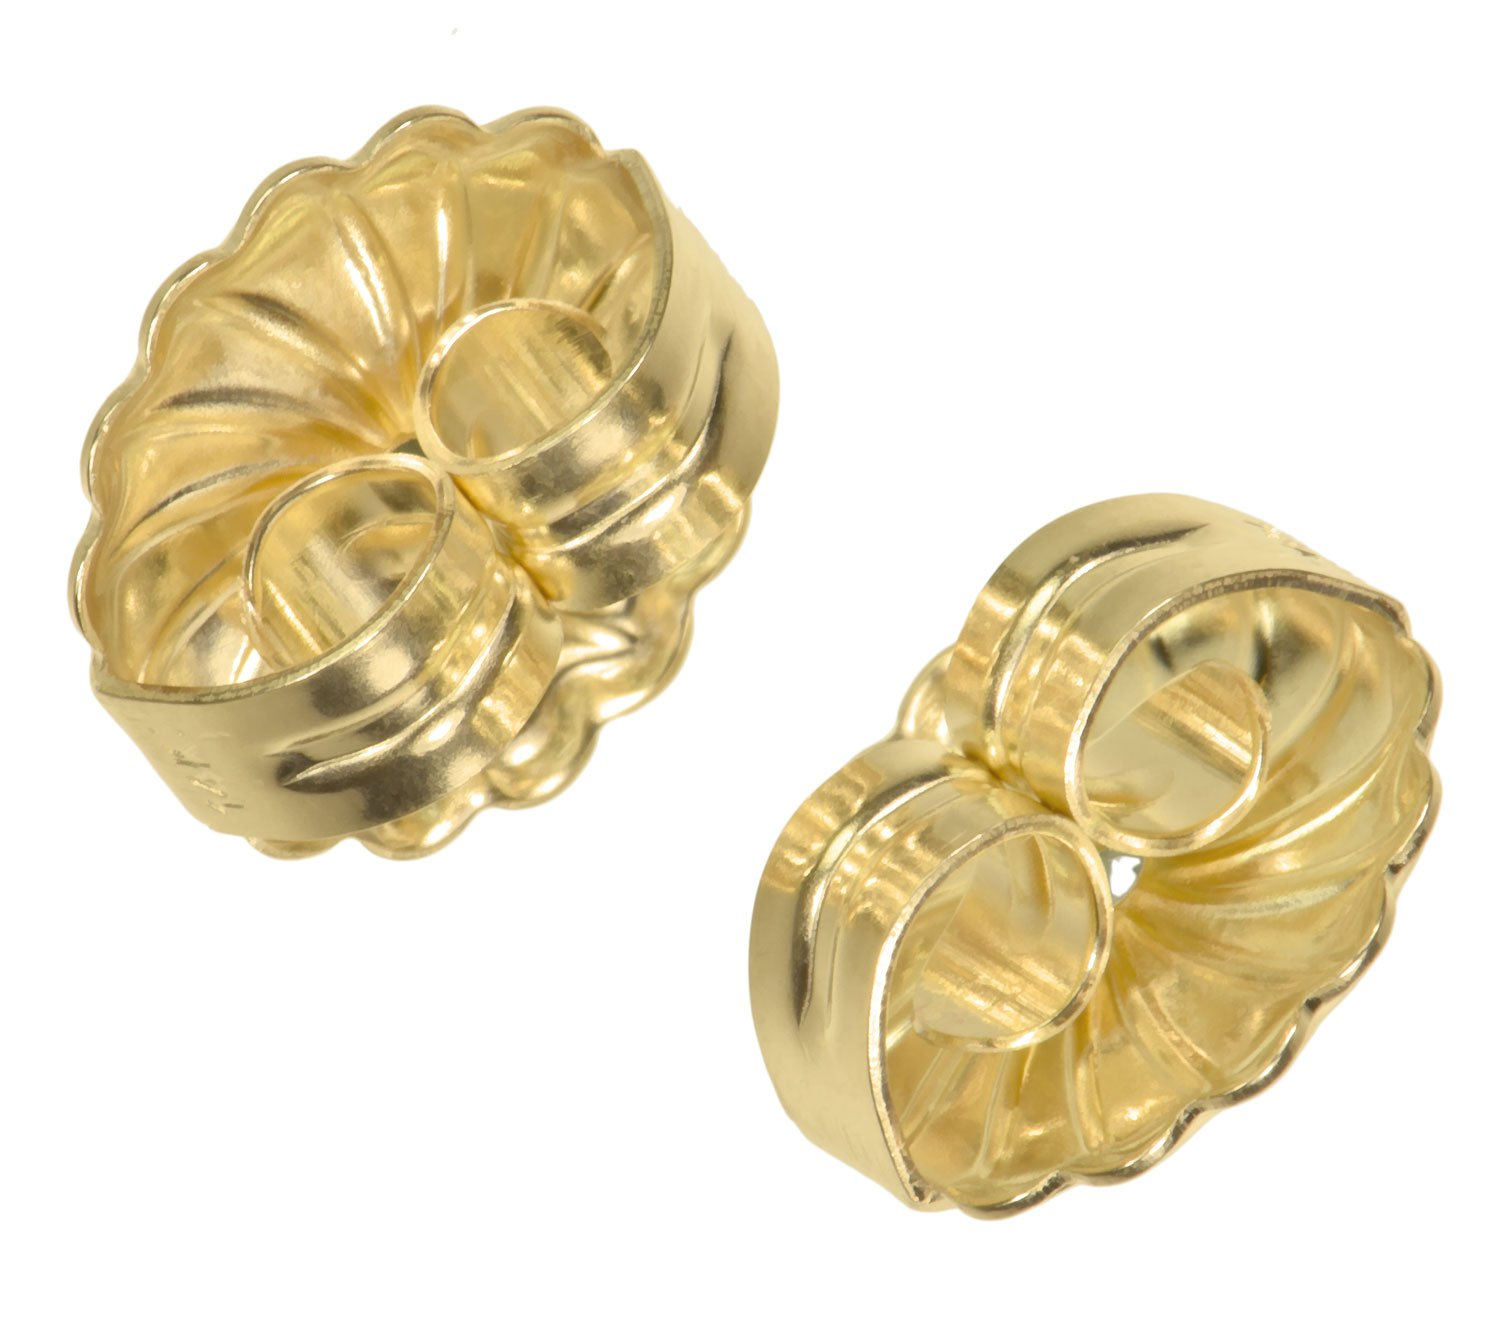 uGems 14K Solid Gold 9.5mm Spiral Swirl Circle Earring Backs for 0.030-0.035'' Post 1 Pair by uGems (Image #2)